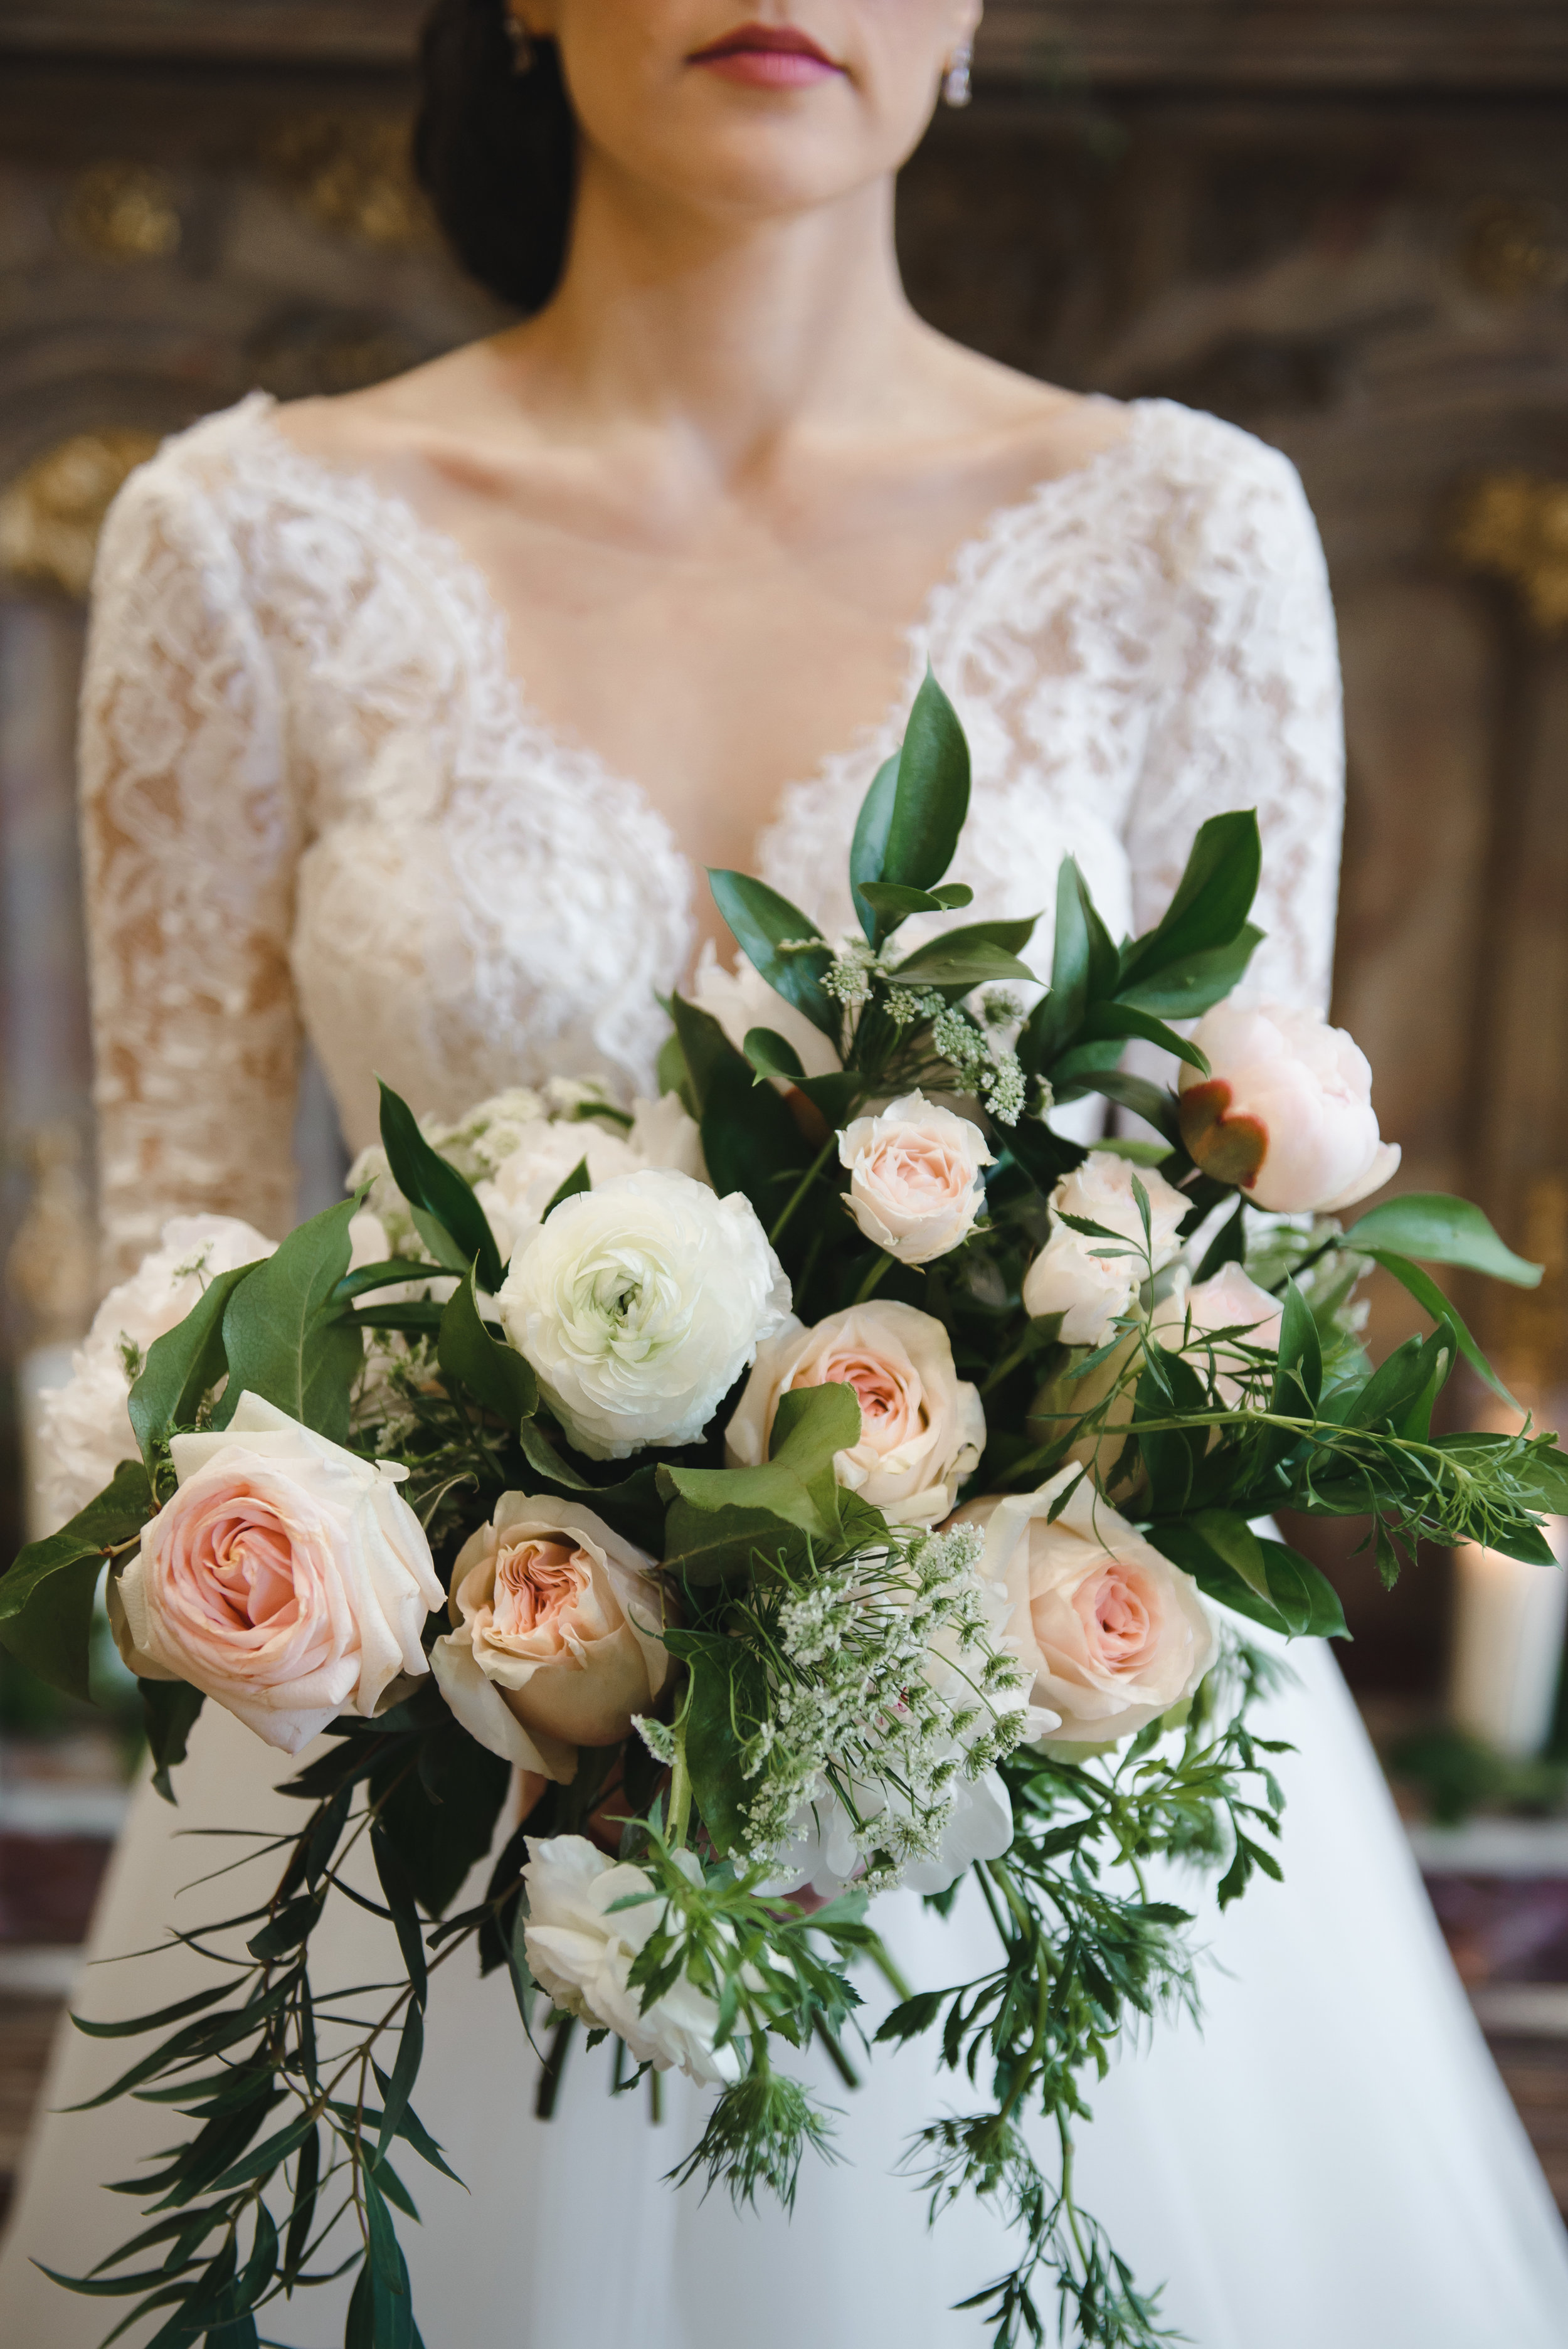 romantic blush and cream bouquet #lrqcfloral #dtla .jpg